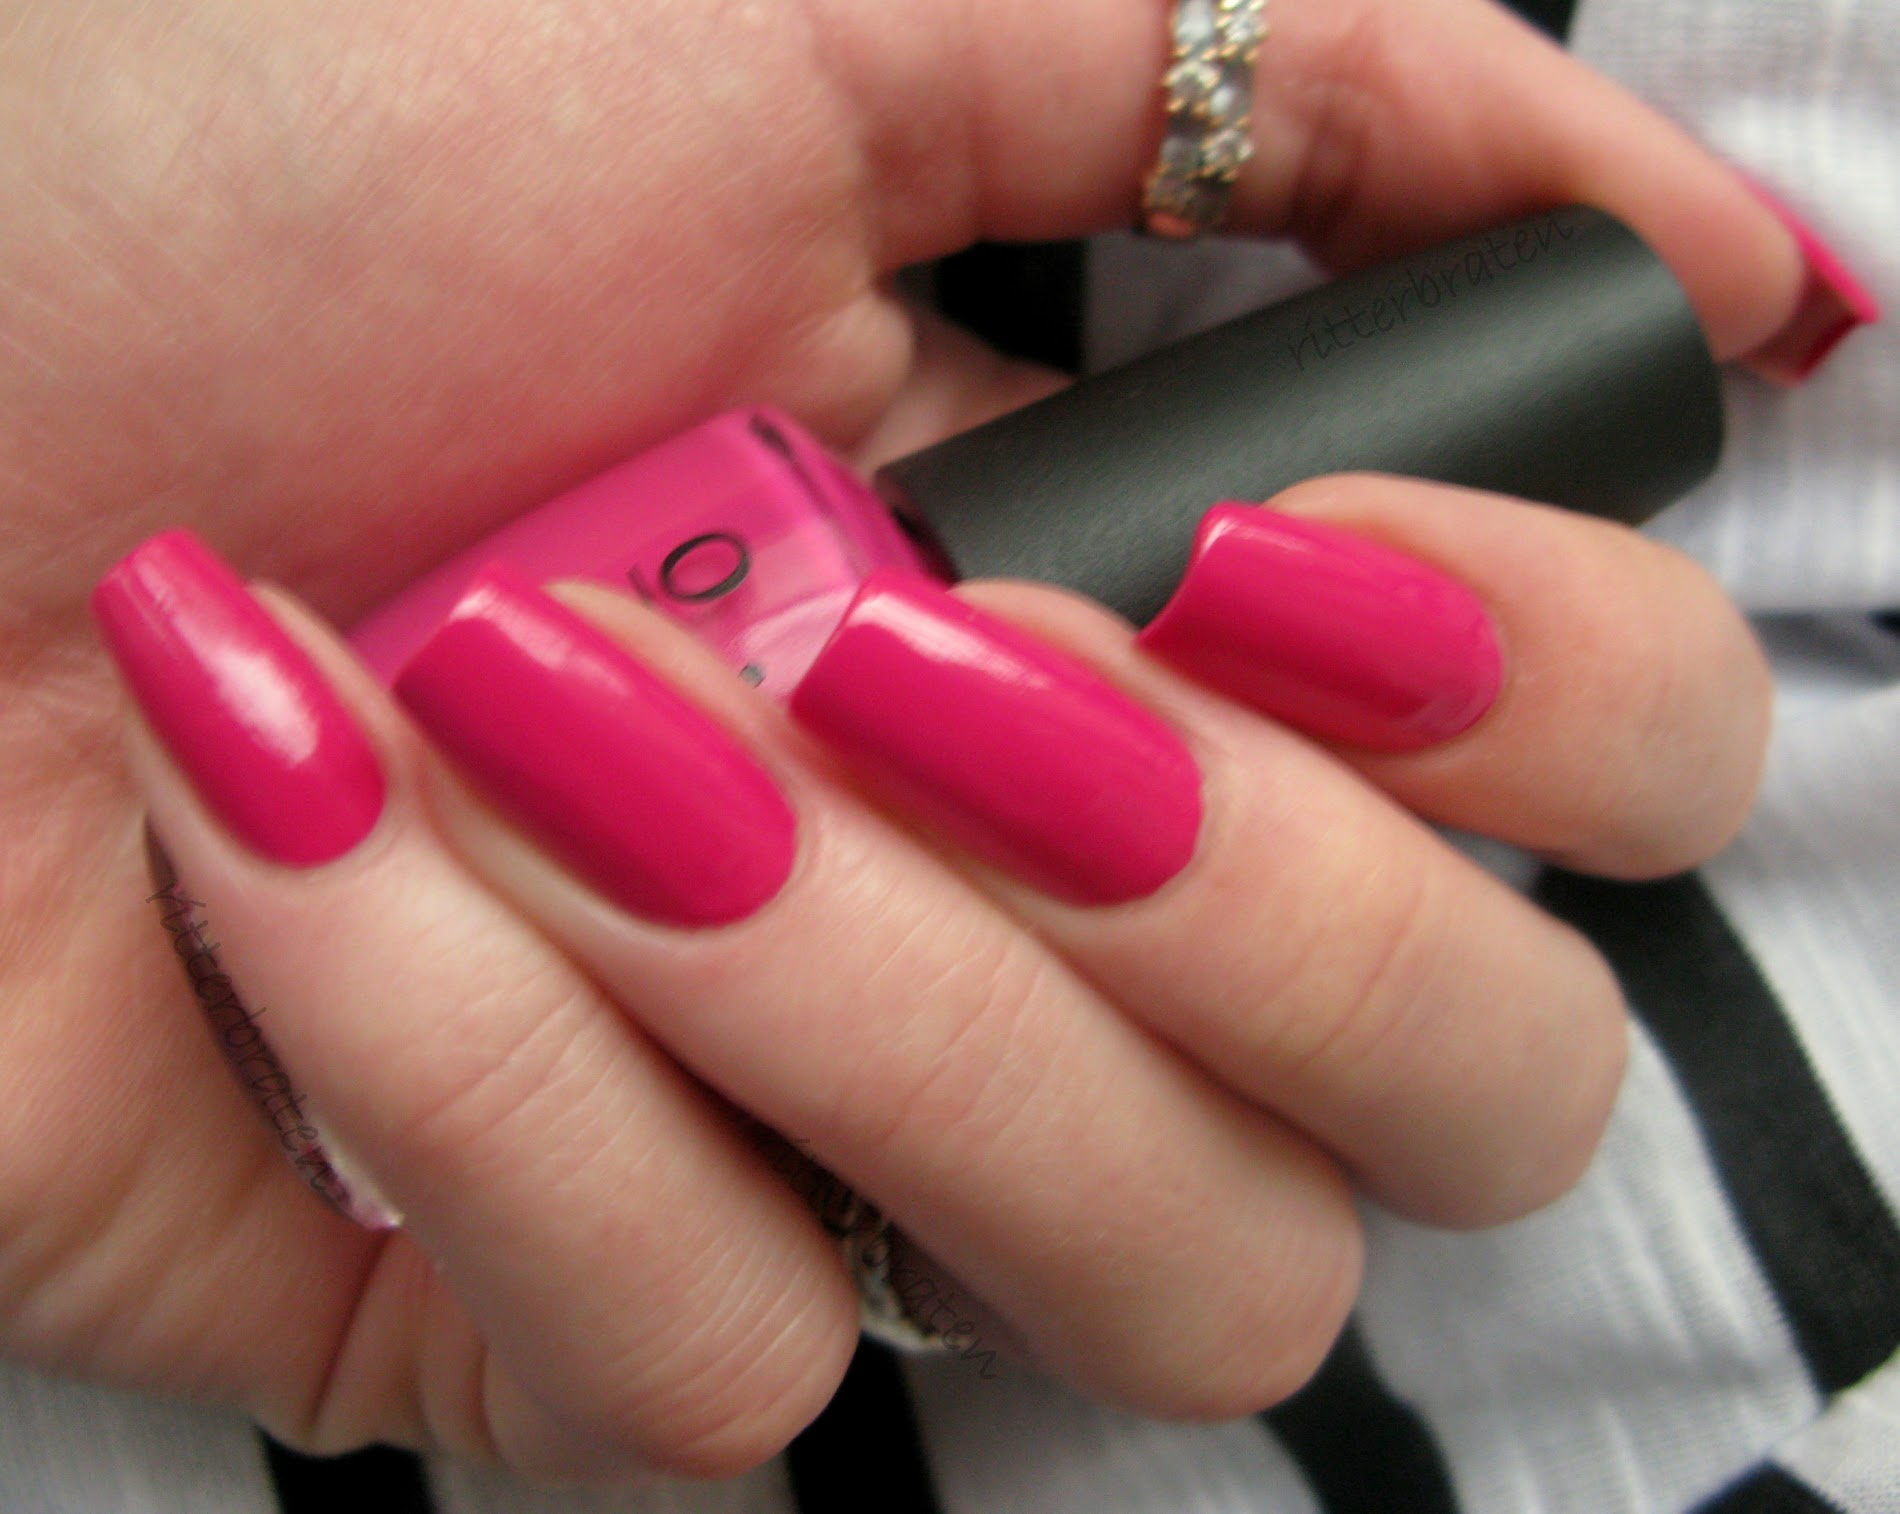 OPI Pink Flamenco nail polish swatch